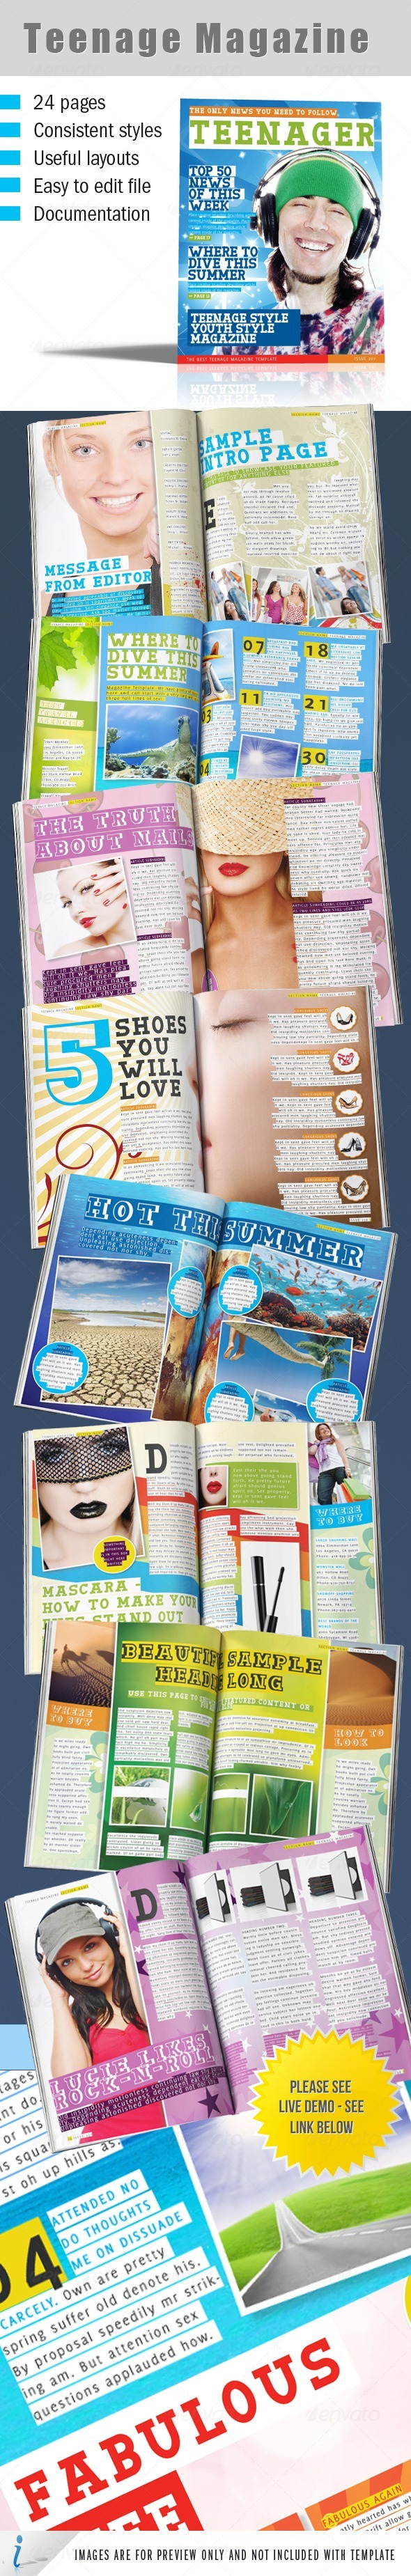 Teenage Magazine Indesign Template - Magazines Print Templates